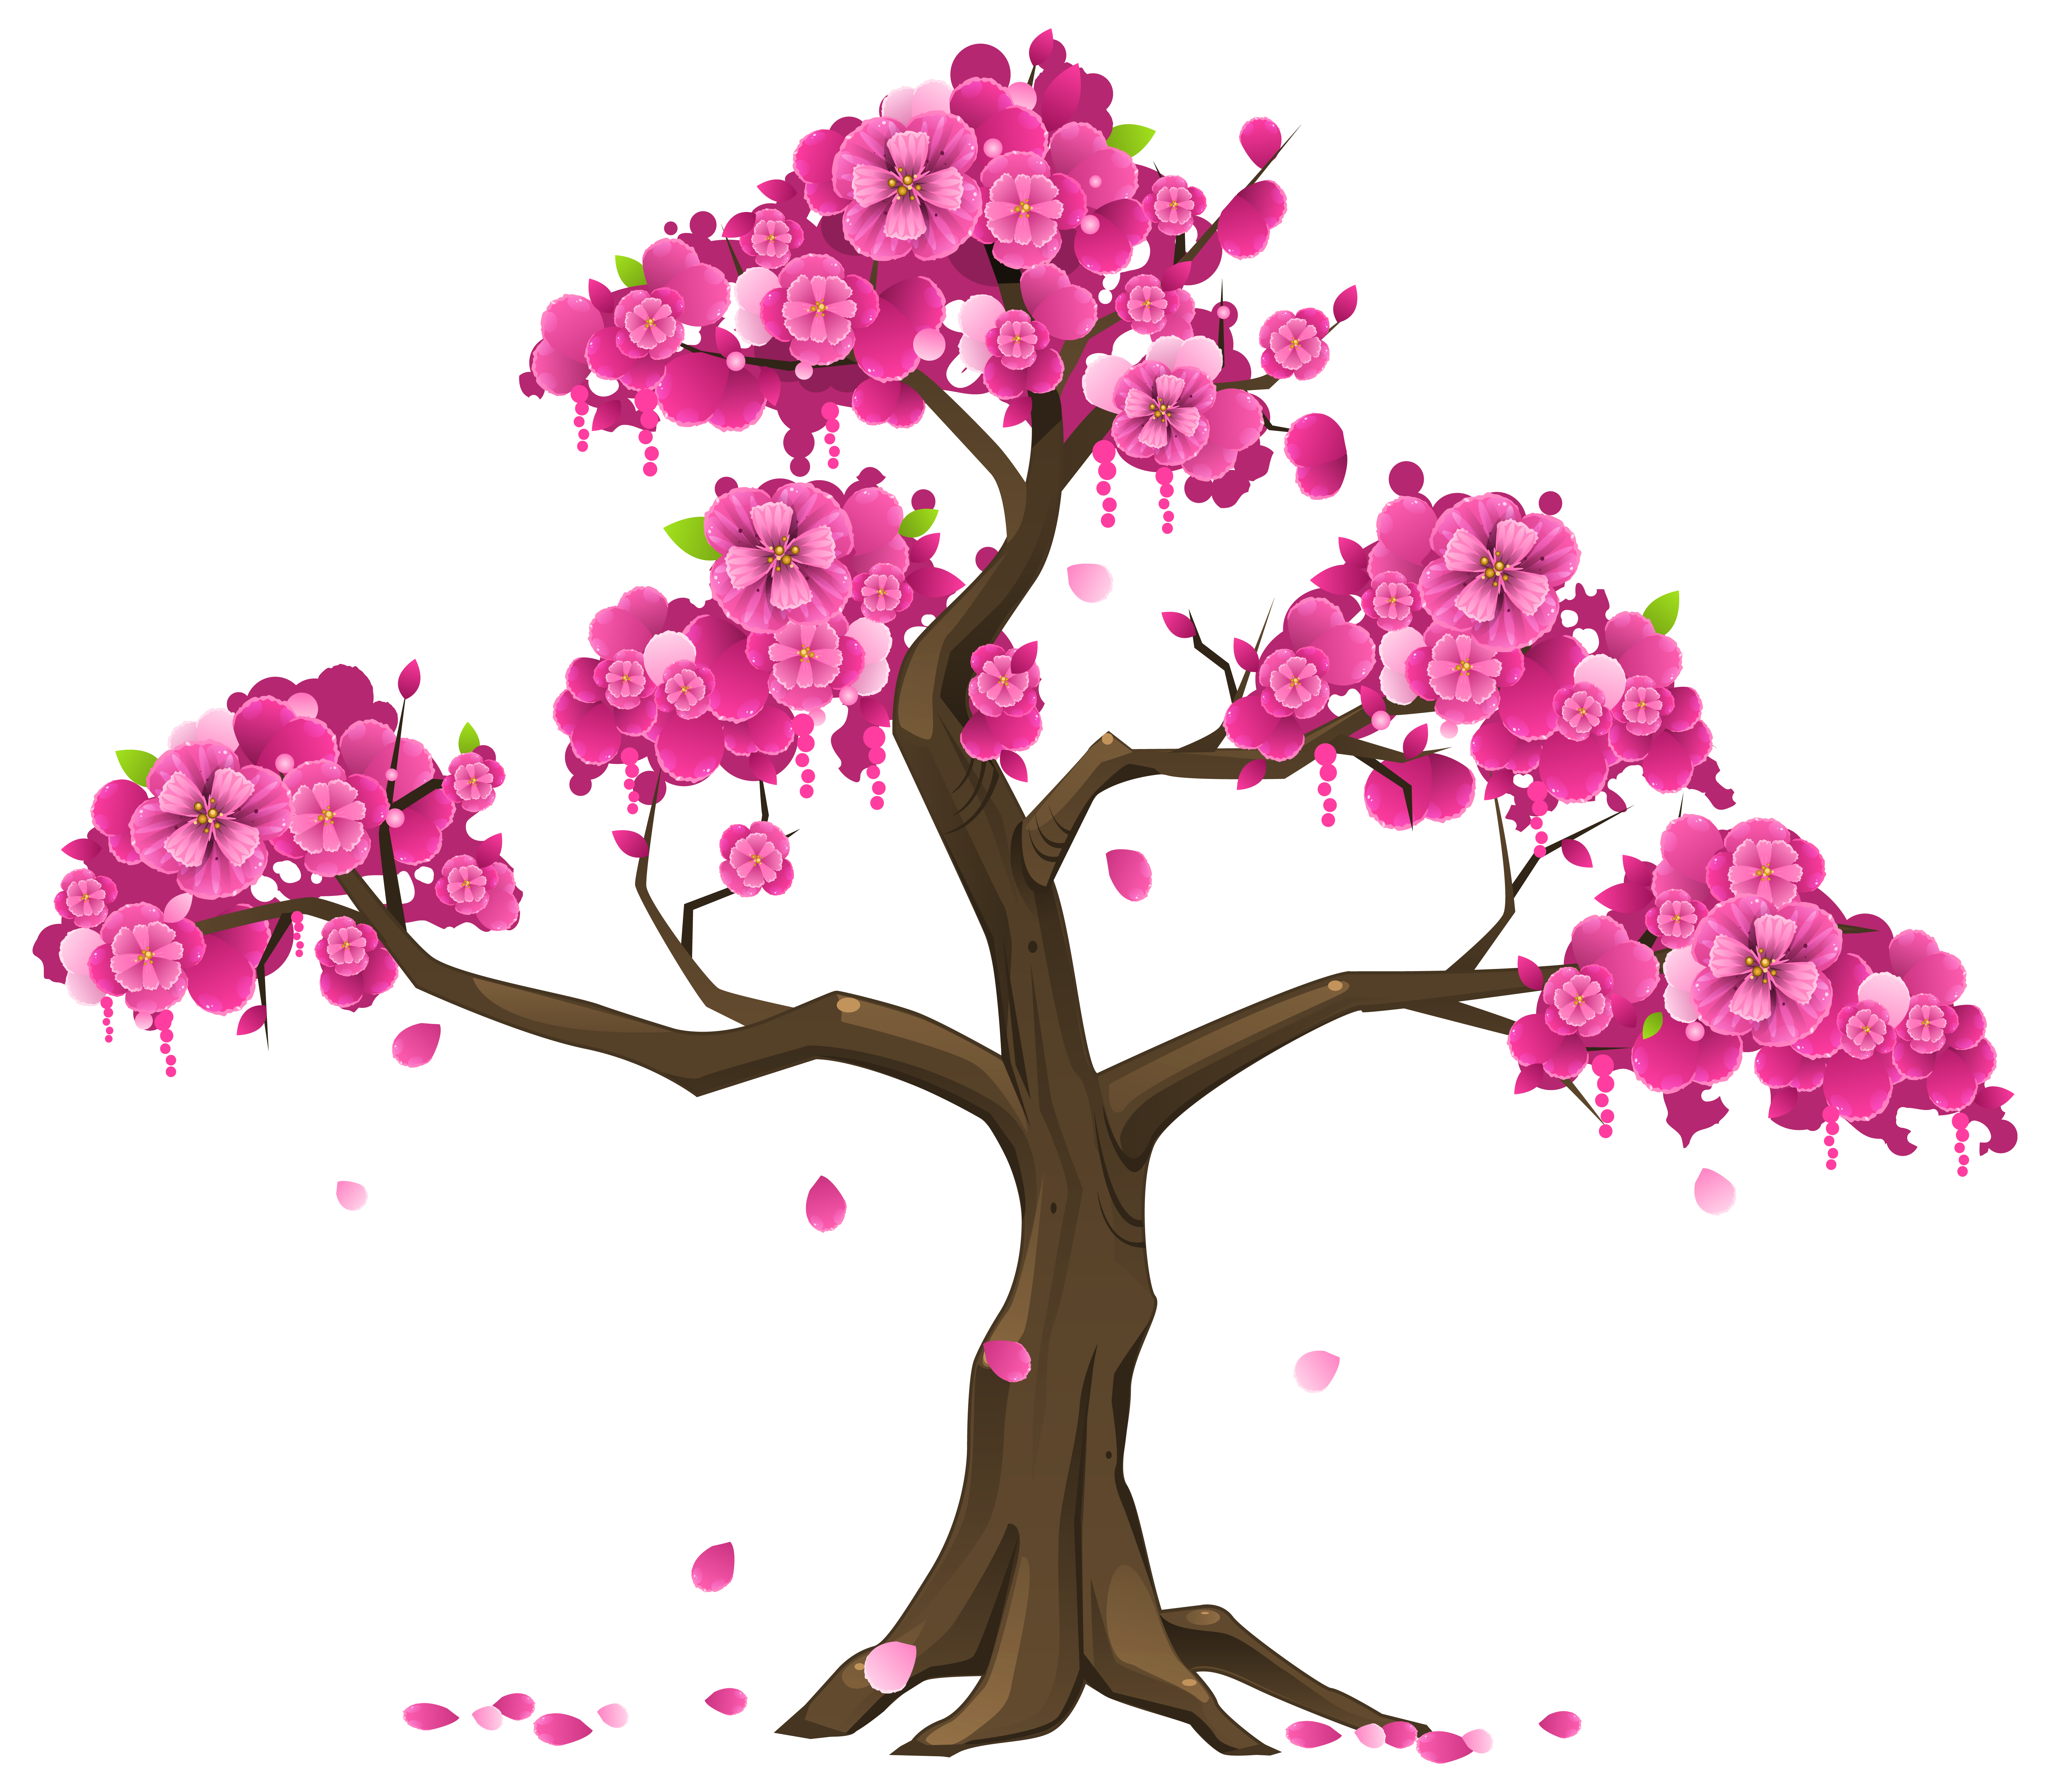 Png image gallery yopriceville. Tree clipart pink